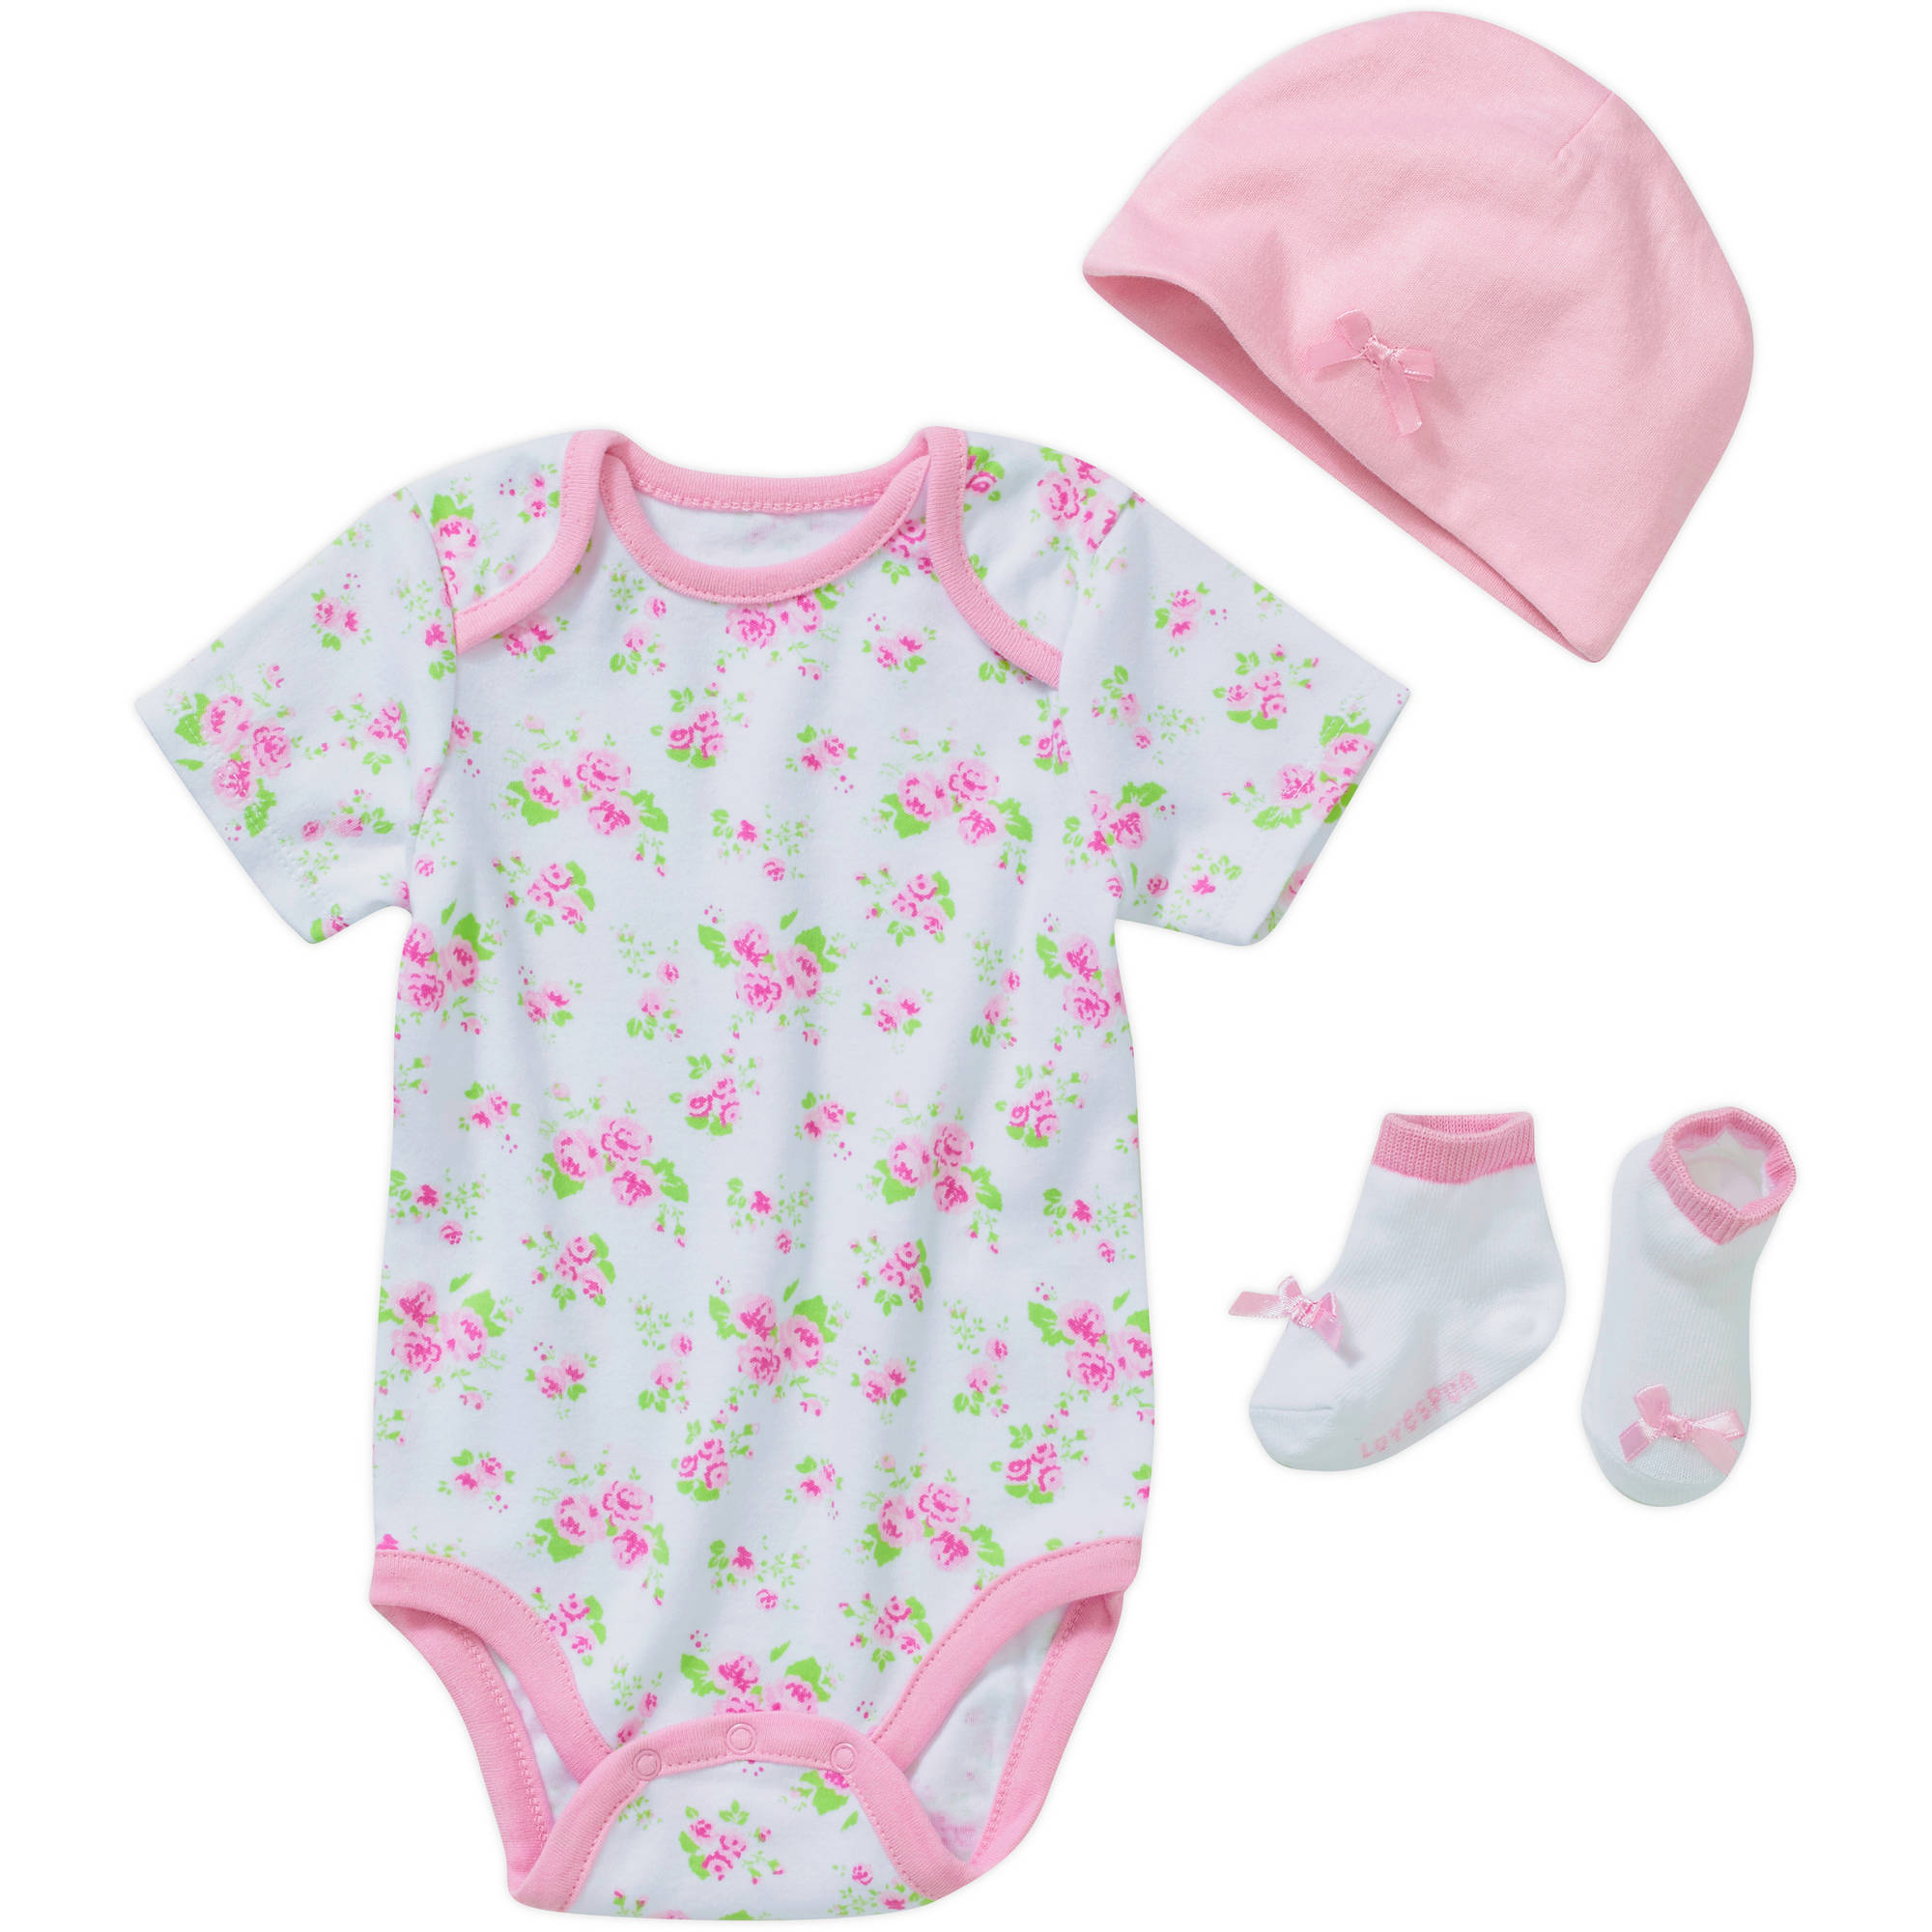 Lovespun Newborn Baby Girls 3 Piece Creeper Sock and